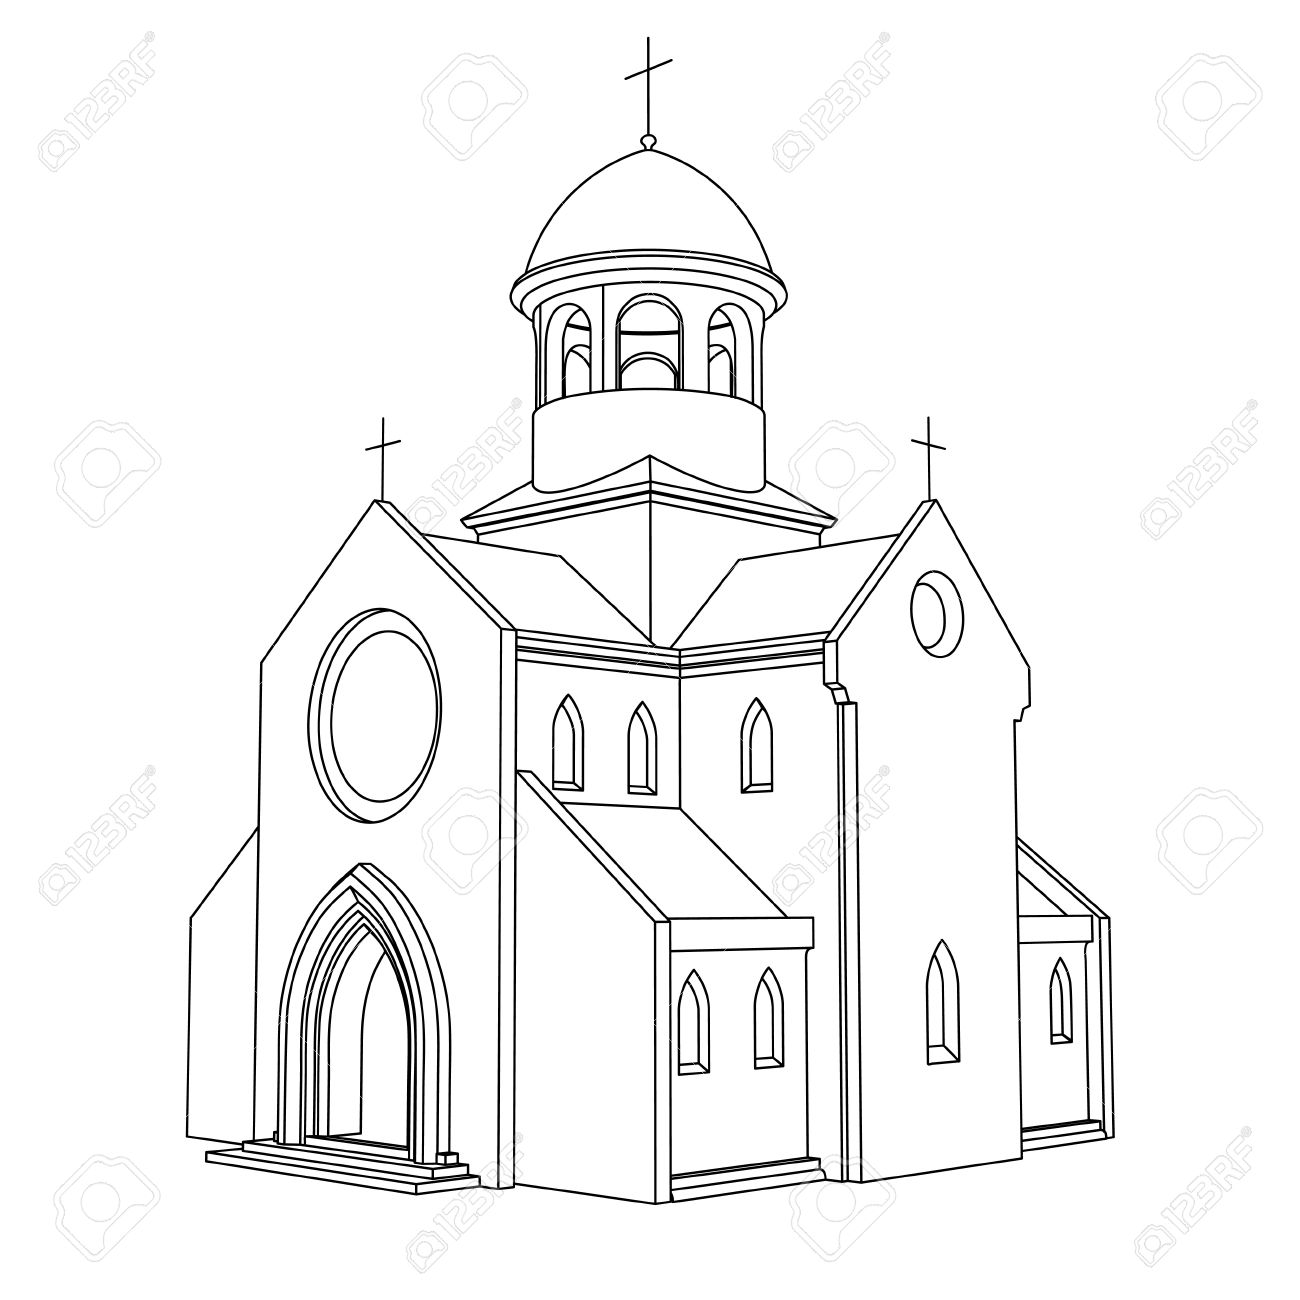 Line Art Ancient Basilica Drawing Vector Illustration Royalty Free.